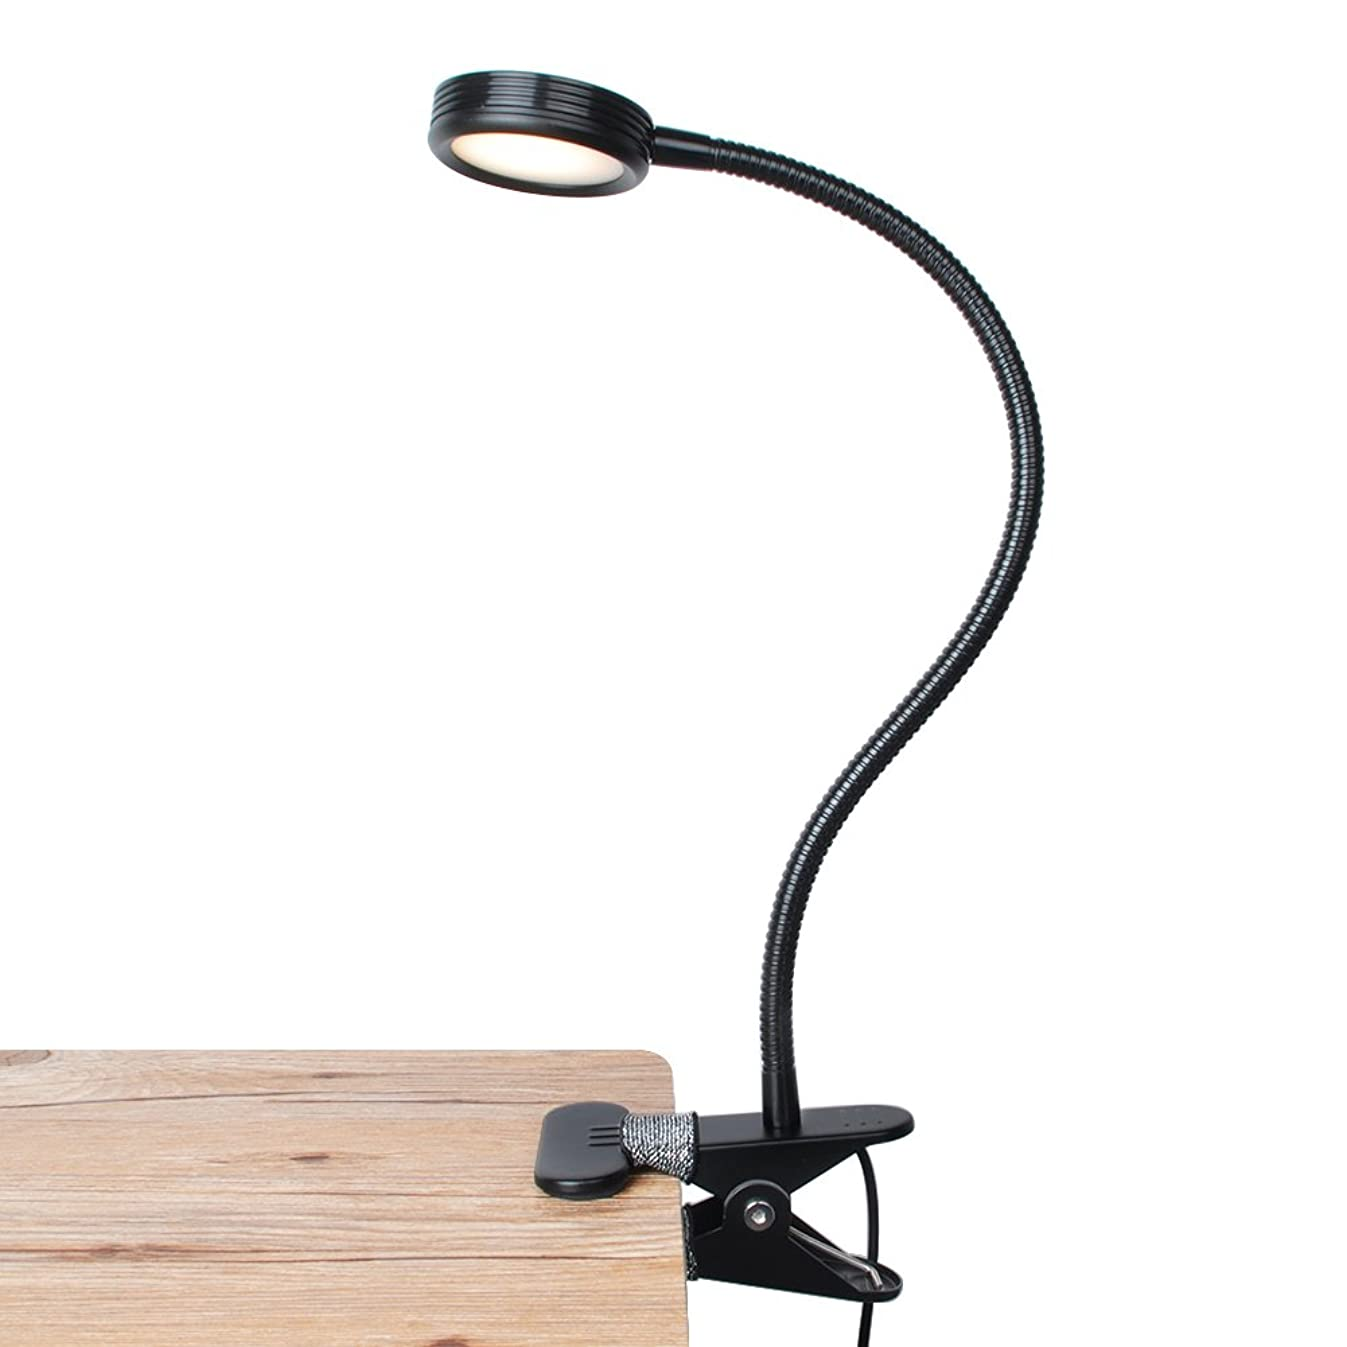 LEPOWER Clip on Light/Reading Light/Light Color Changeable/Night Light Clip on for Desk, Bed Headboard and Computers (Black)